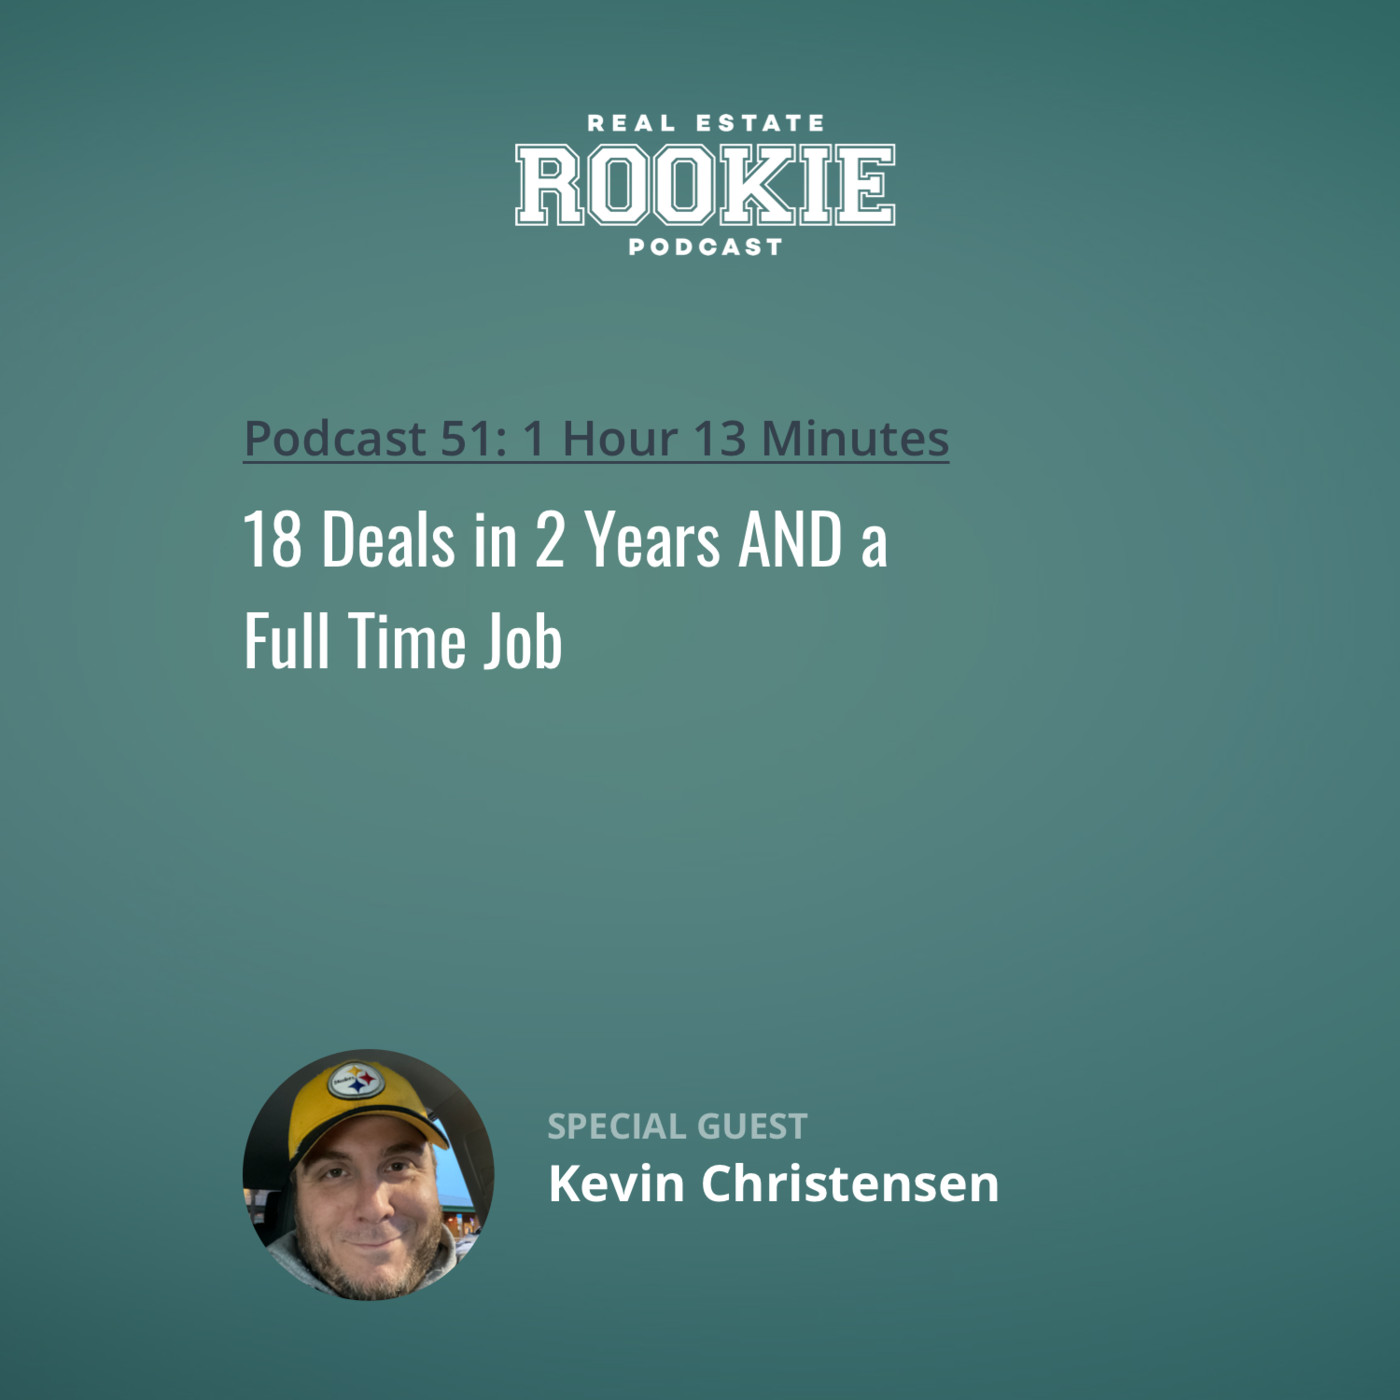 18 Deals in 2 Years AND a Full Time Job with Kevin Christensen